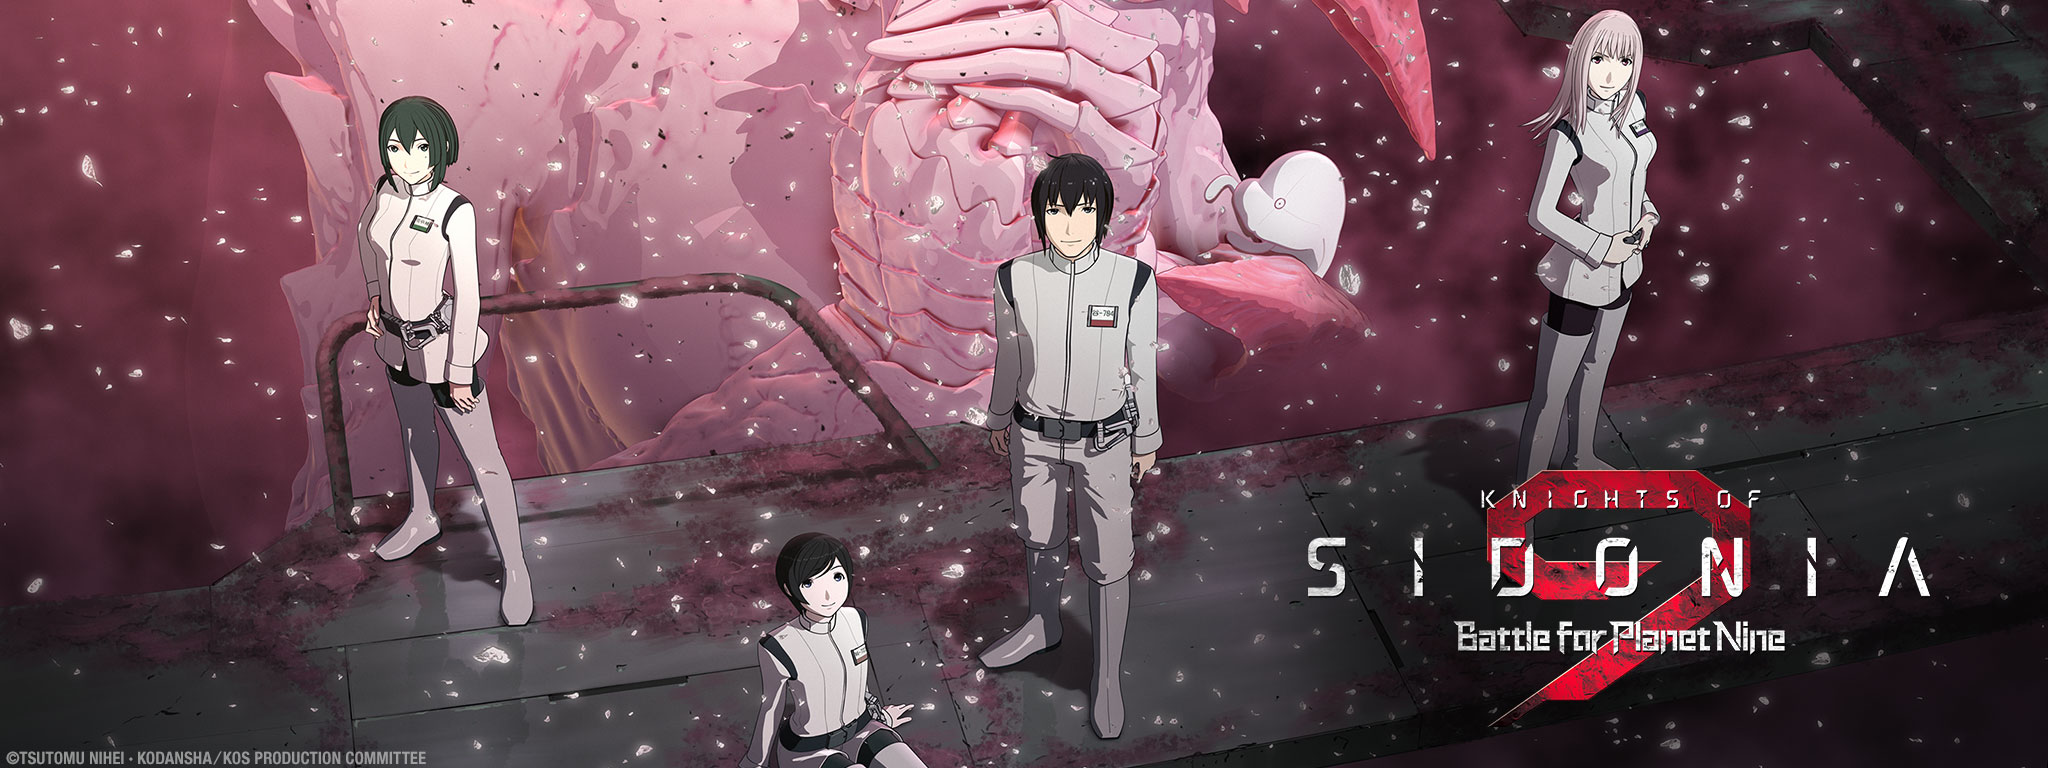 Knights of Sidonia Season 2: Battle for Planet Nine